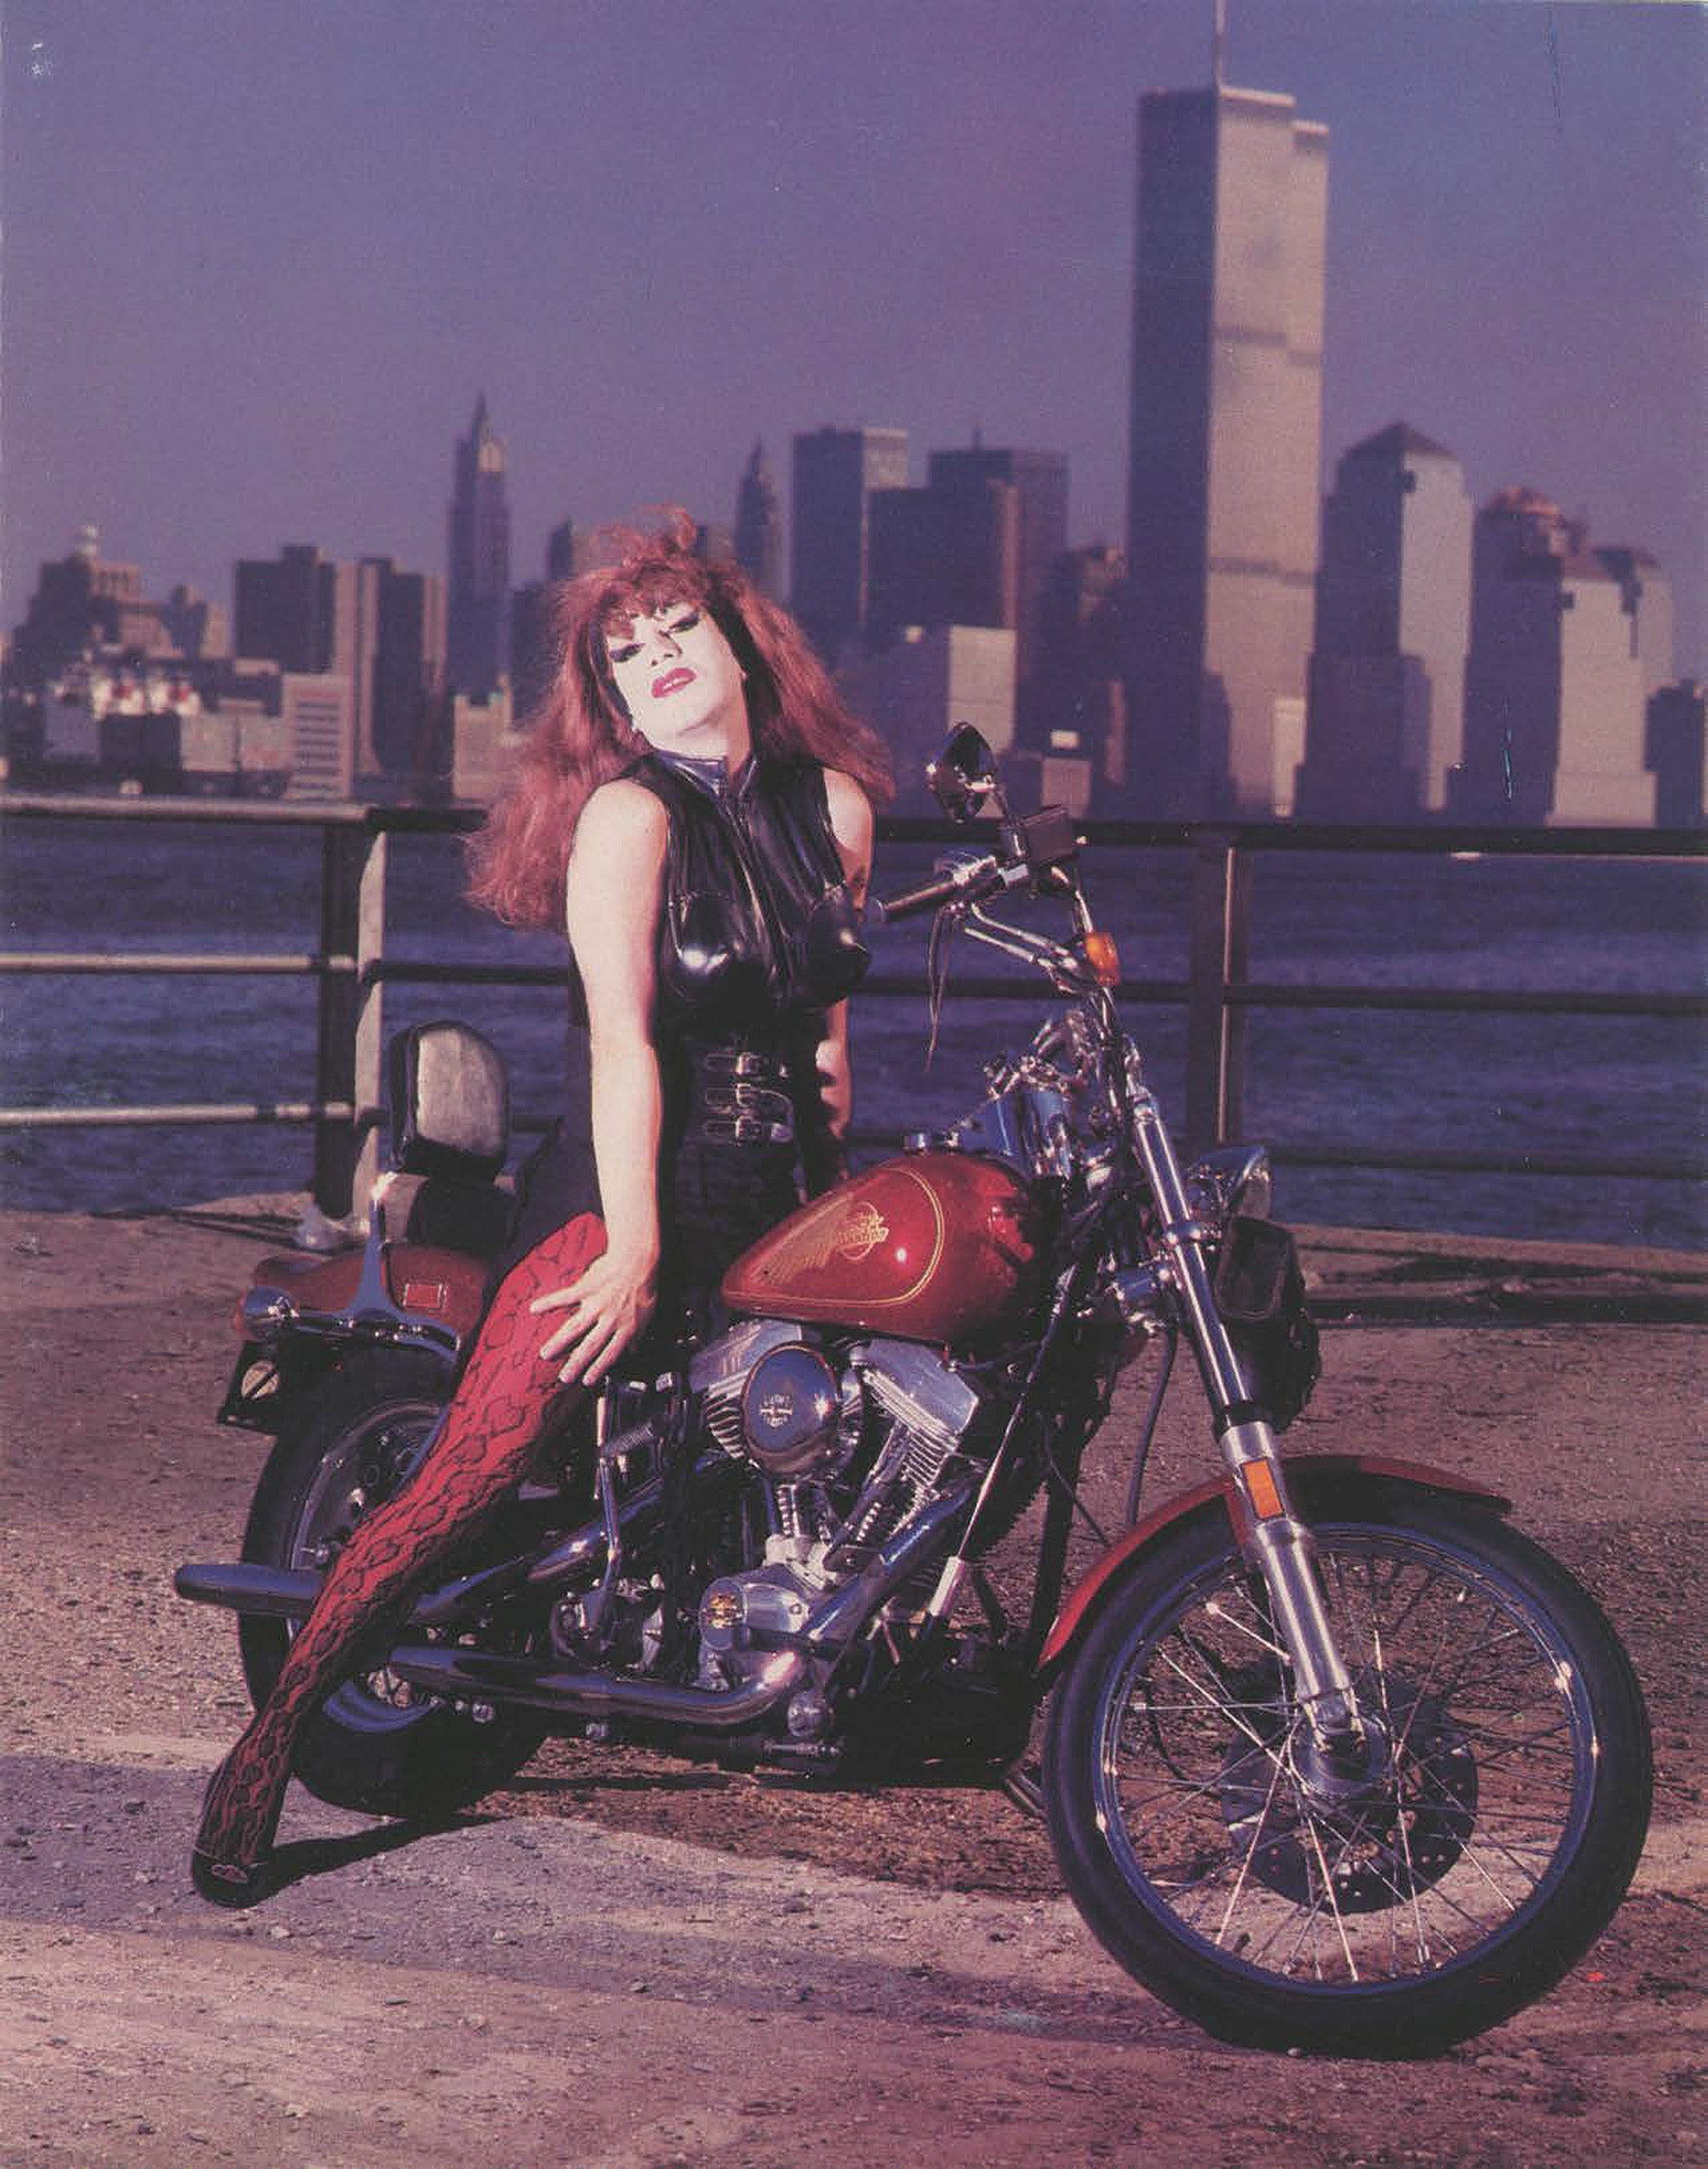 Joey Arias on motorcycle with New York City skyline in background.